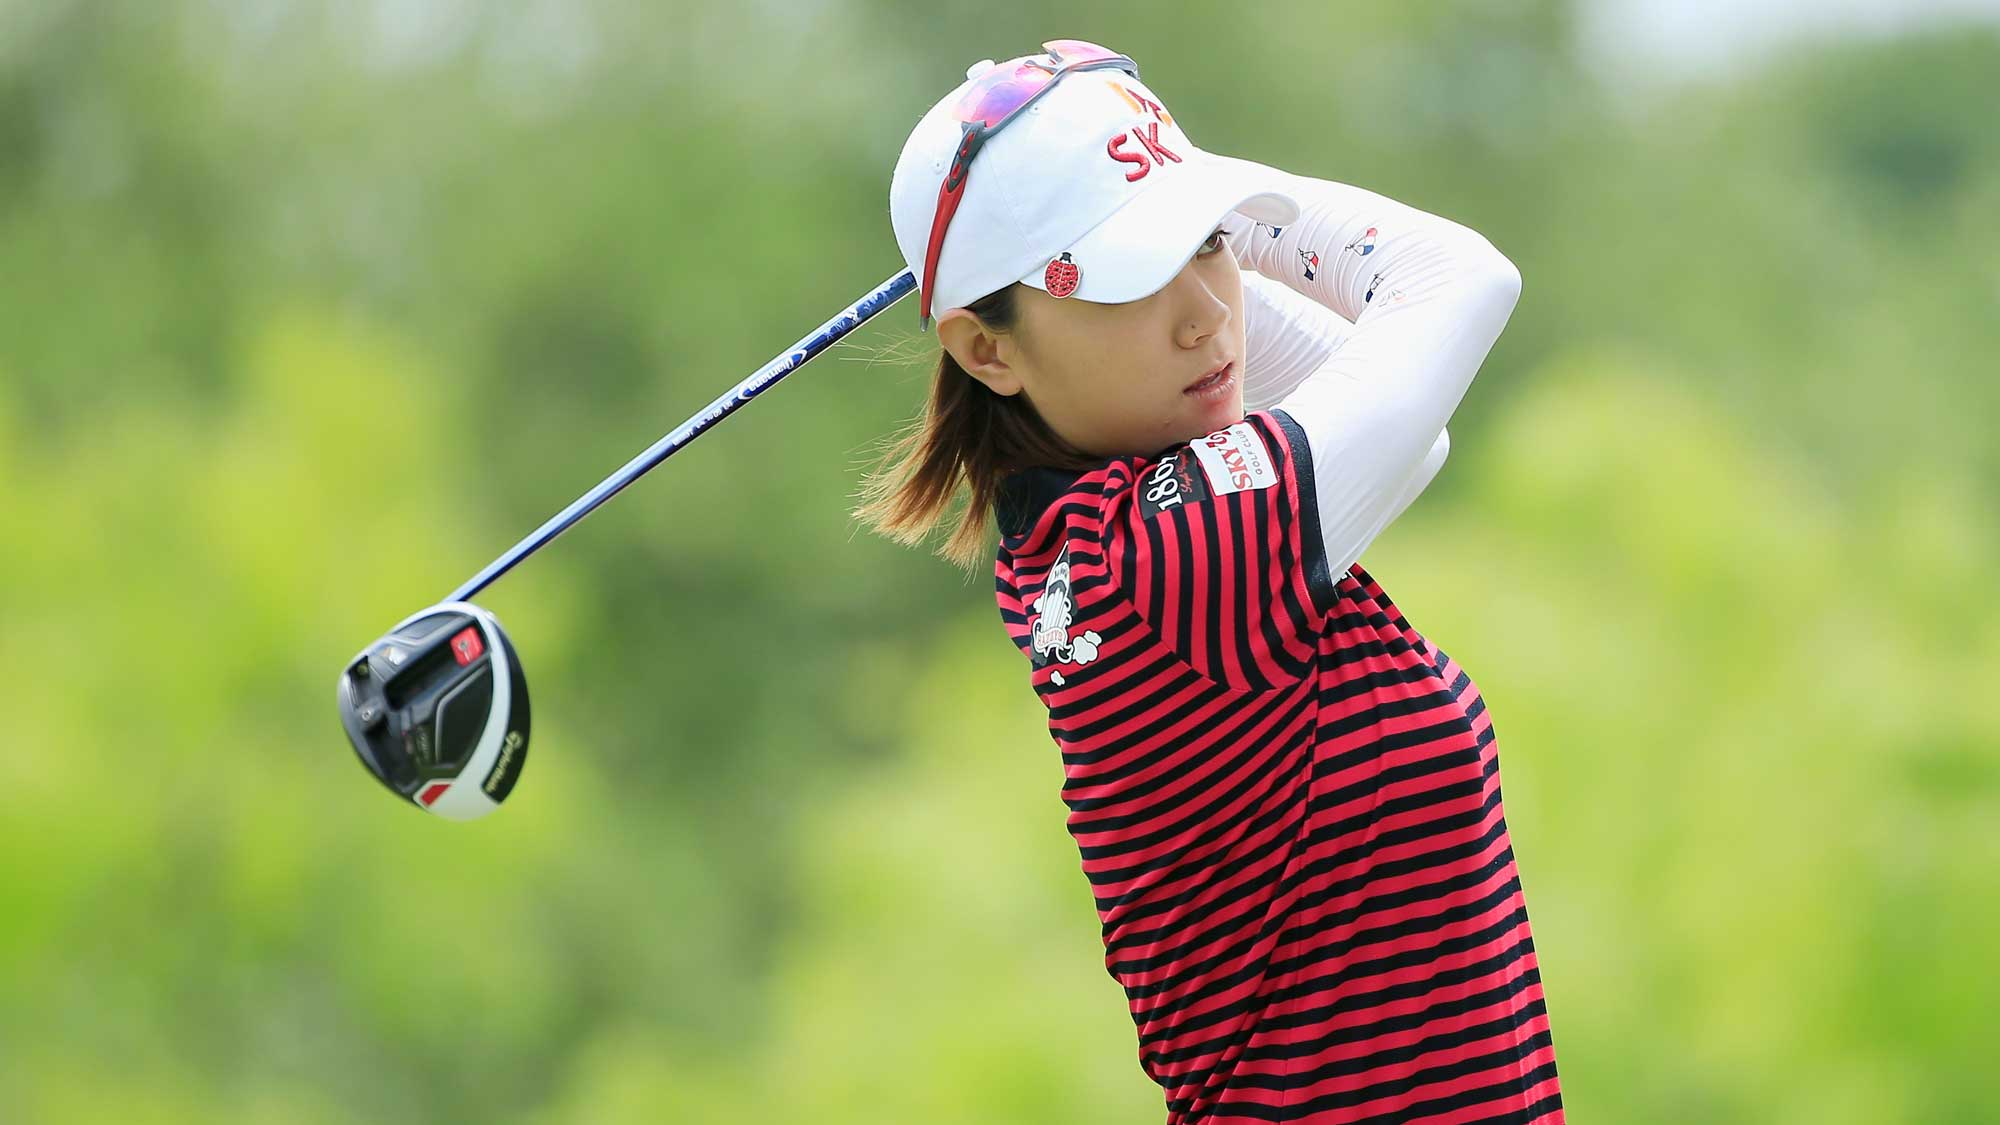 Na Yeon Choi of South Korea hits her tee shot on the eighth hole during the third round of the Volunteers of America Texas Shootout